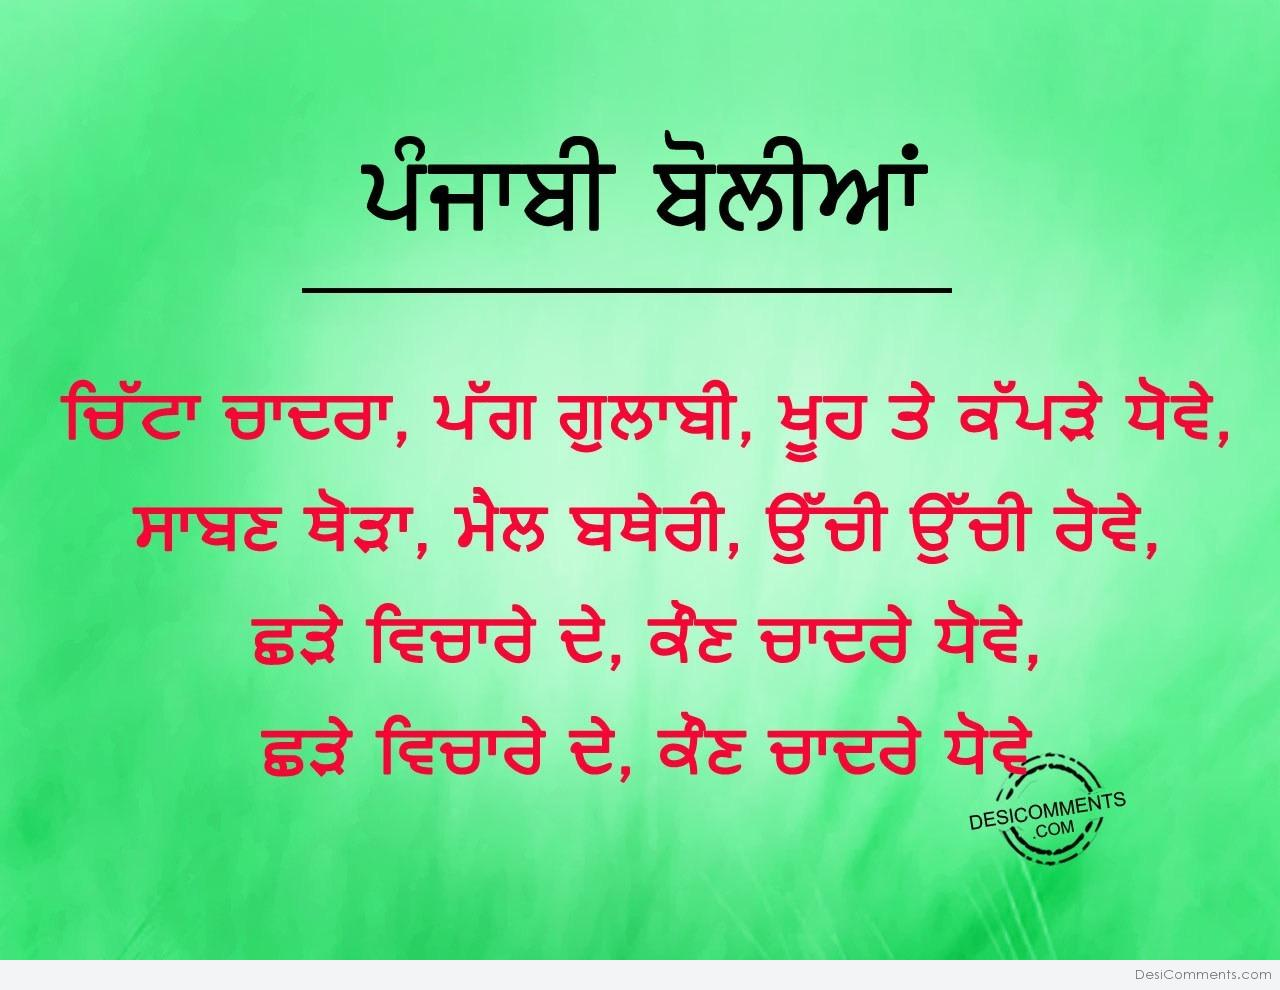 Good Morning Wallpapers With Quotes For Facebook Chita Chadra Pagg Gulabi Punjabi Boliyan Desicomments Com